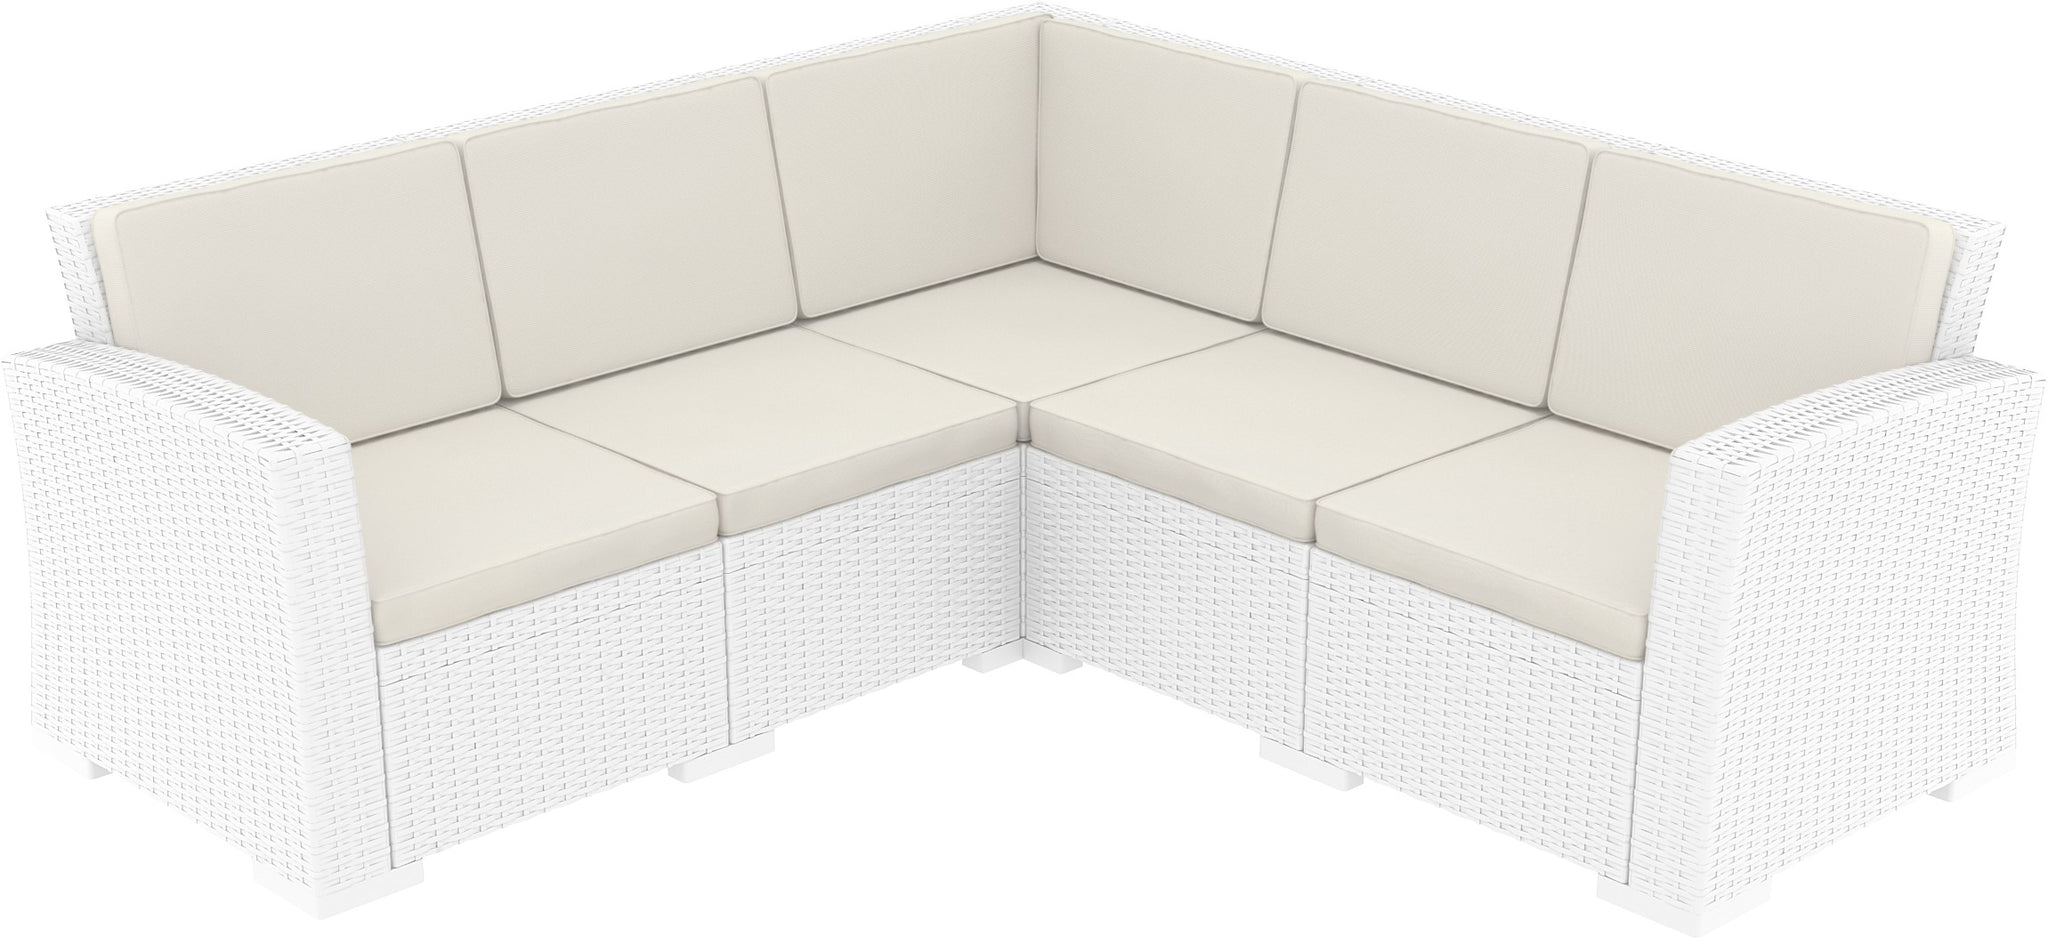 Awe Inspiring Monaco Resin Patio Sectional 5 Piece White With Cushion Pack Of 1 Set Forskolin Free Trial Chair Design Images Forskolin Free Trialorg